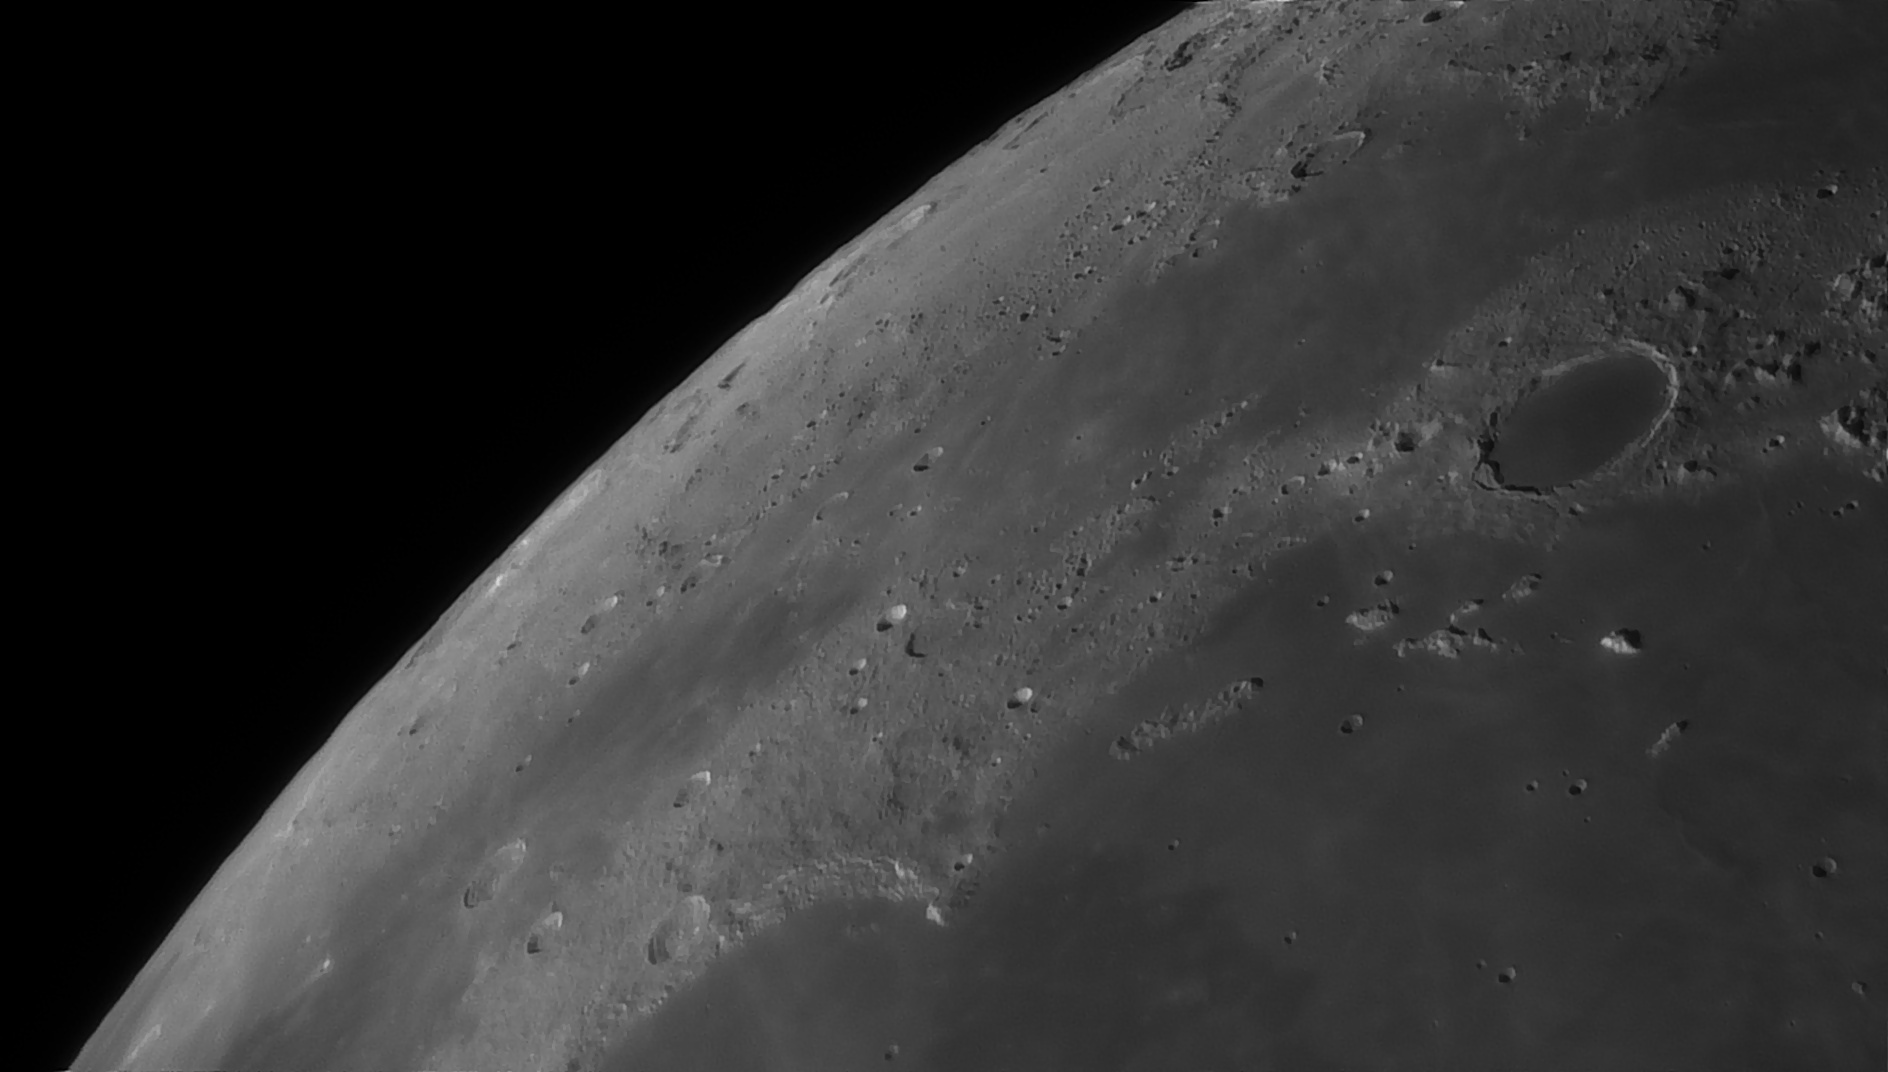 5e5194ea46f0e_Moon_055138_160120_ZWOASI290MM_Rouge_23A_AS_P35_lapl6_ap759_AI_Deconvolution_5--.jpg.6217f63c62573d906362d526ed154f53.jpg